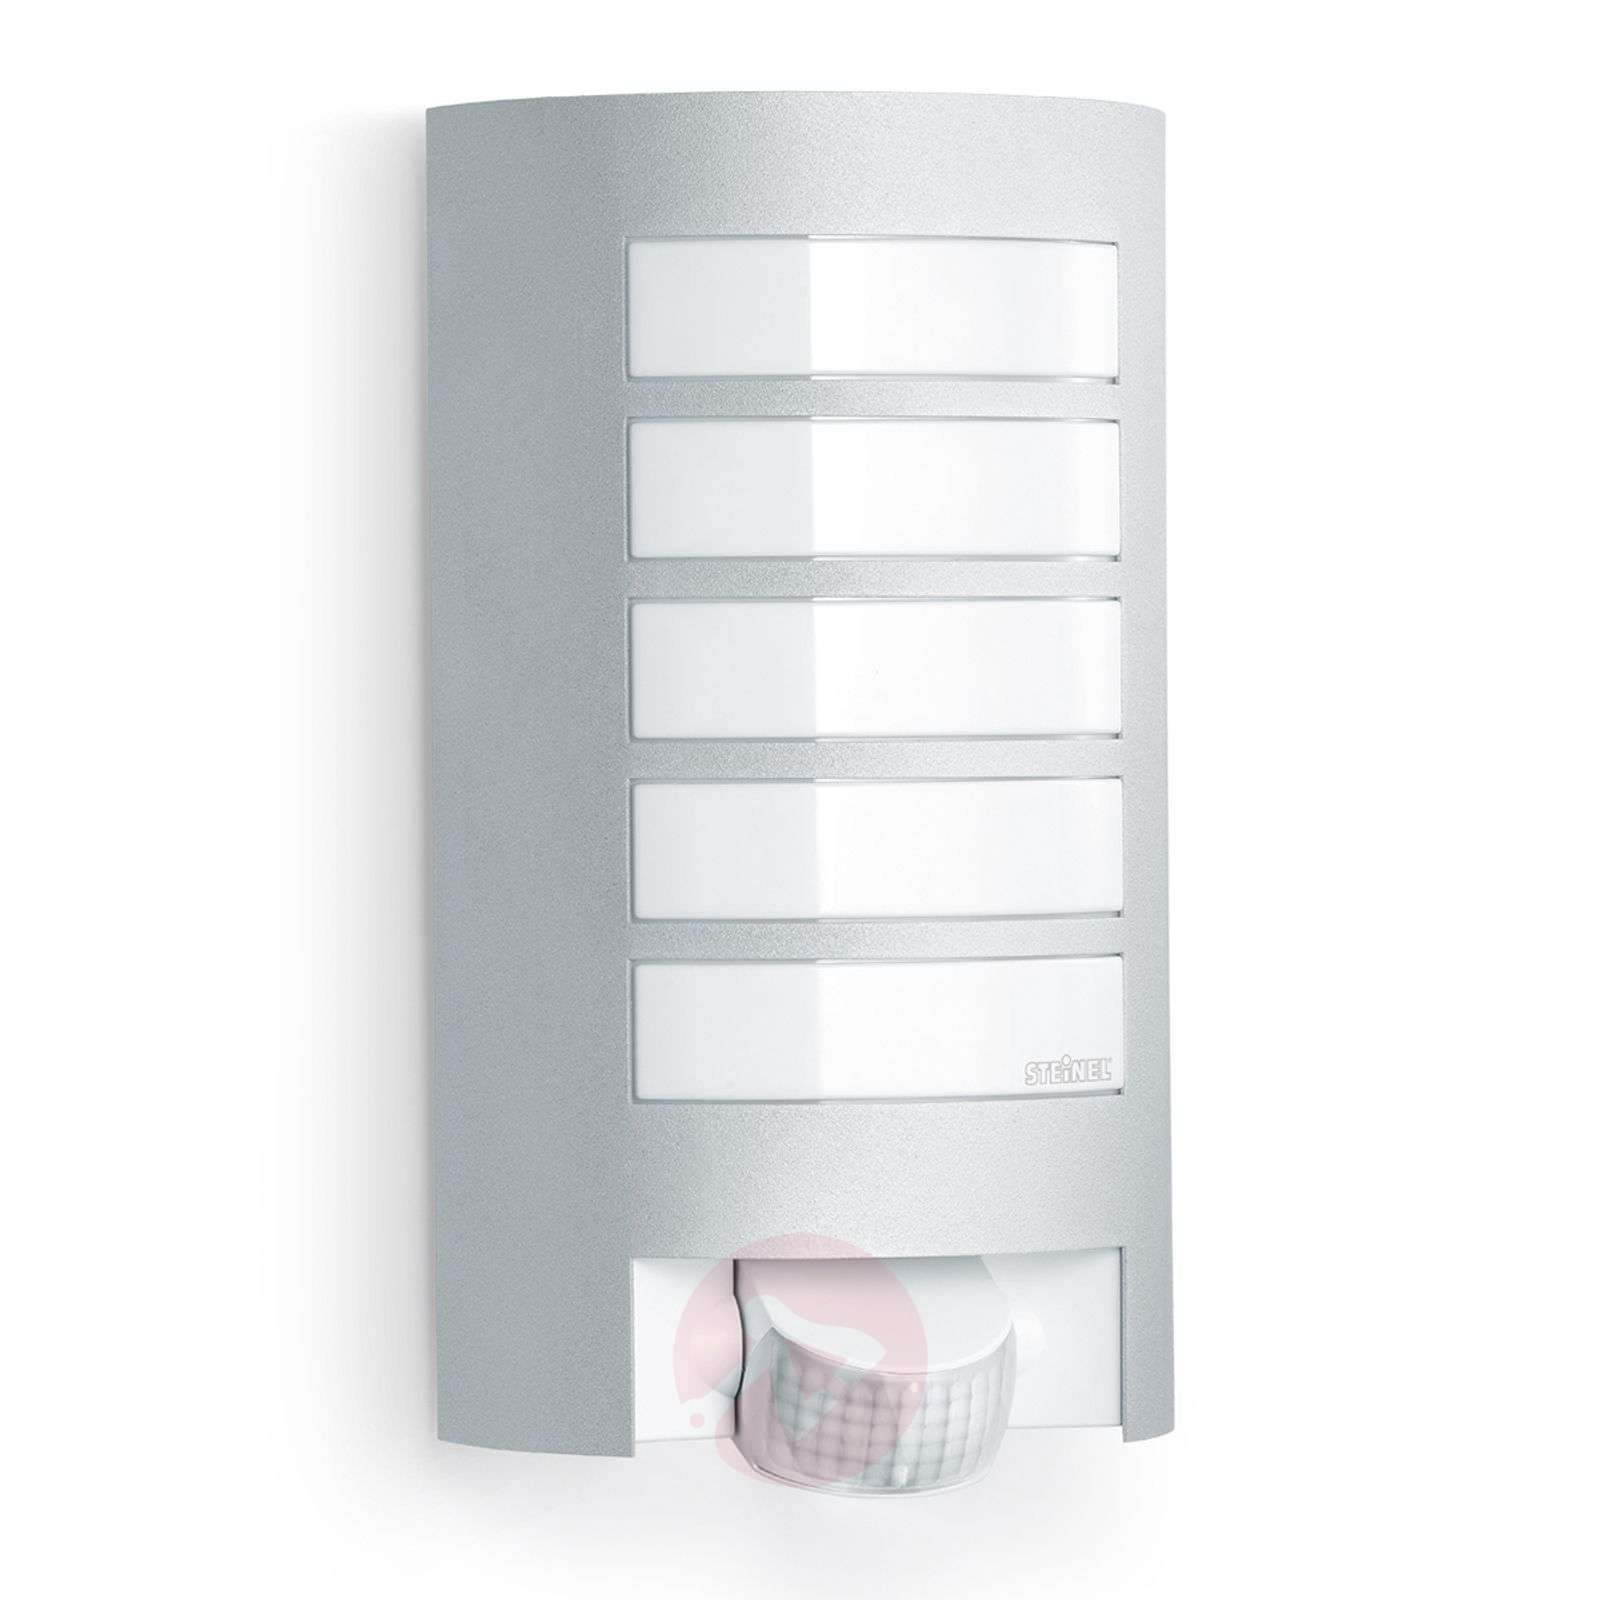 Steinel L 12 Sensor wall light for Outside Modern-8505274-03